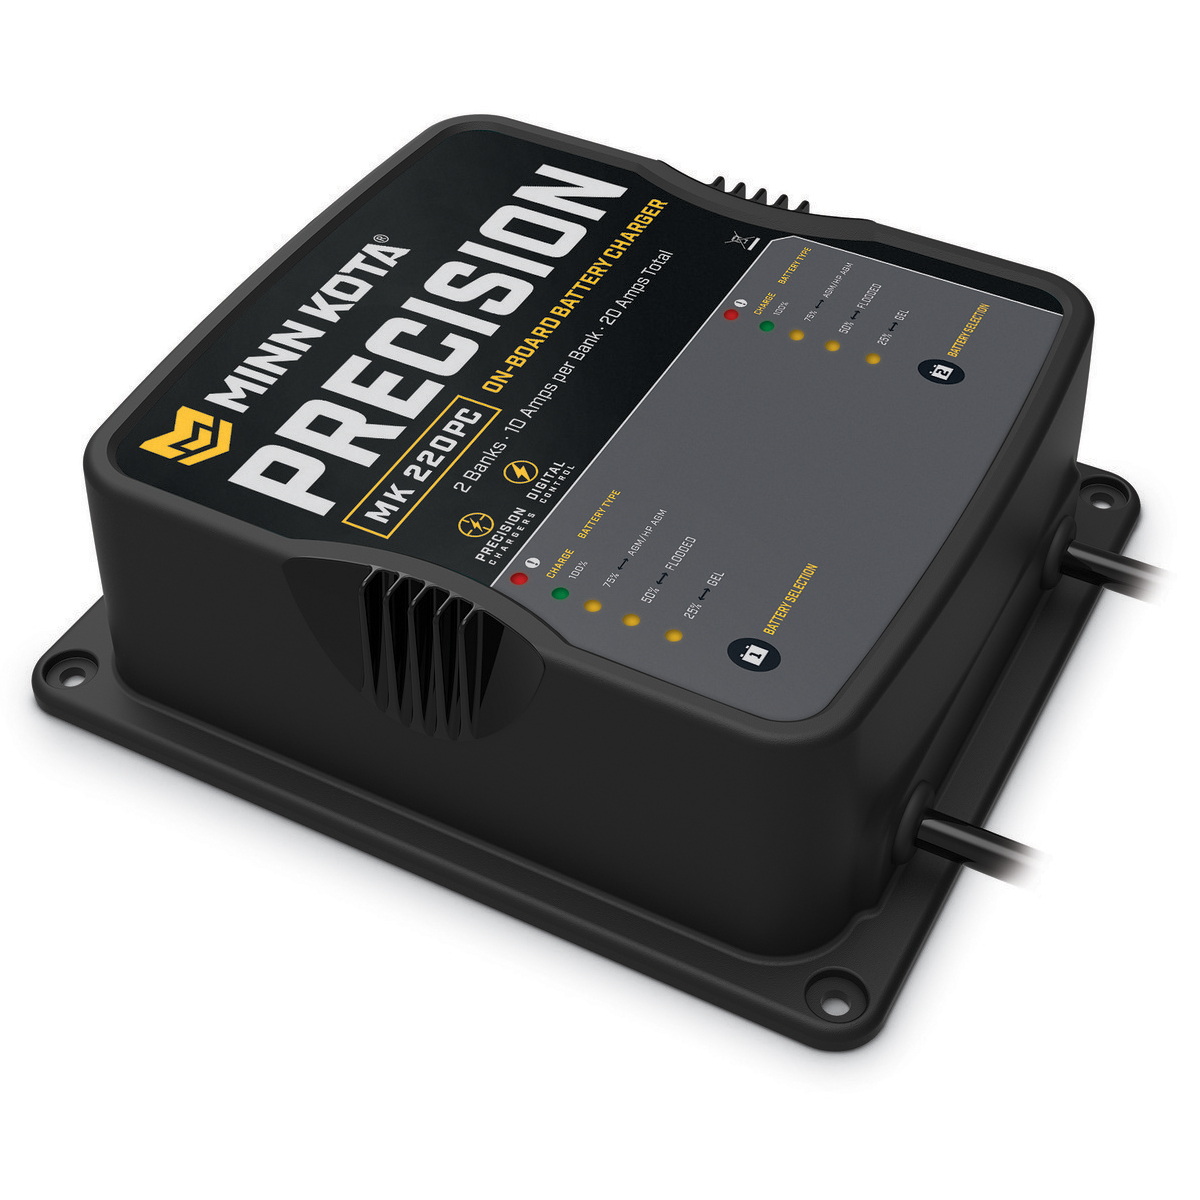 Minn Kota On-Board Precision Charger - 2 Banks, 10 Amps